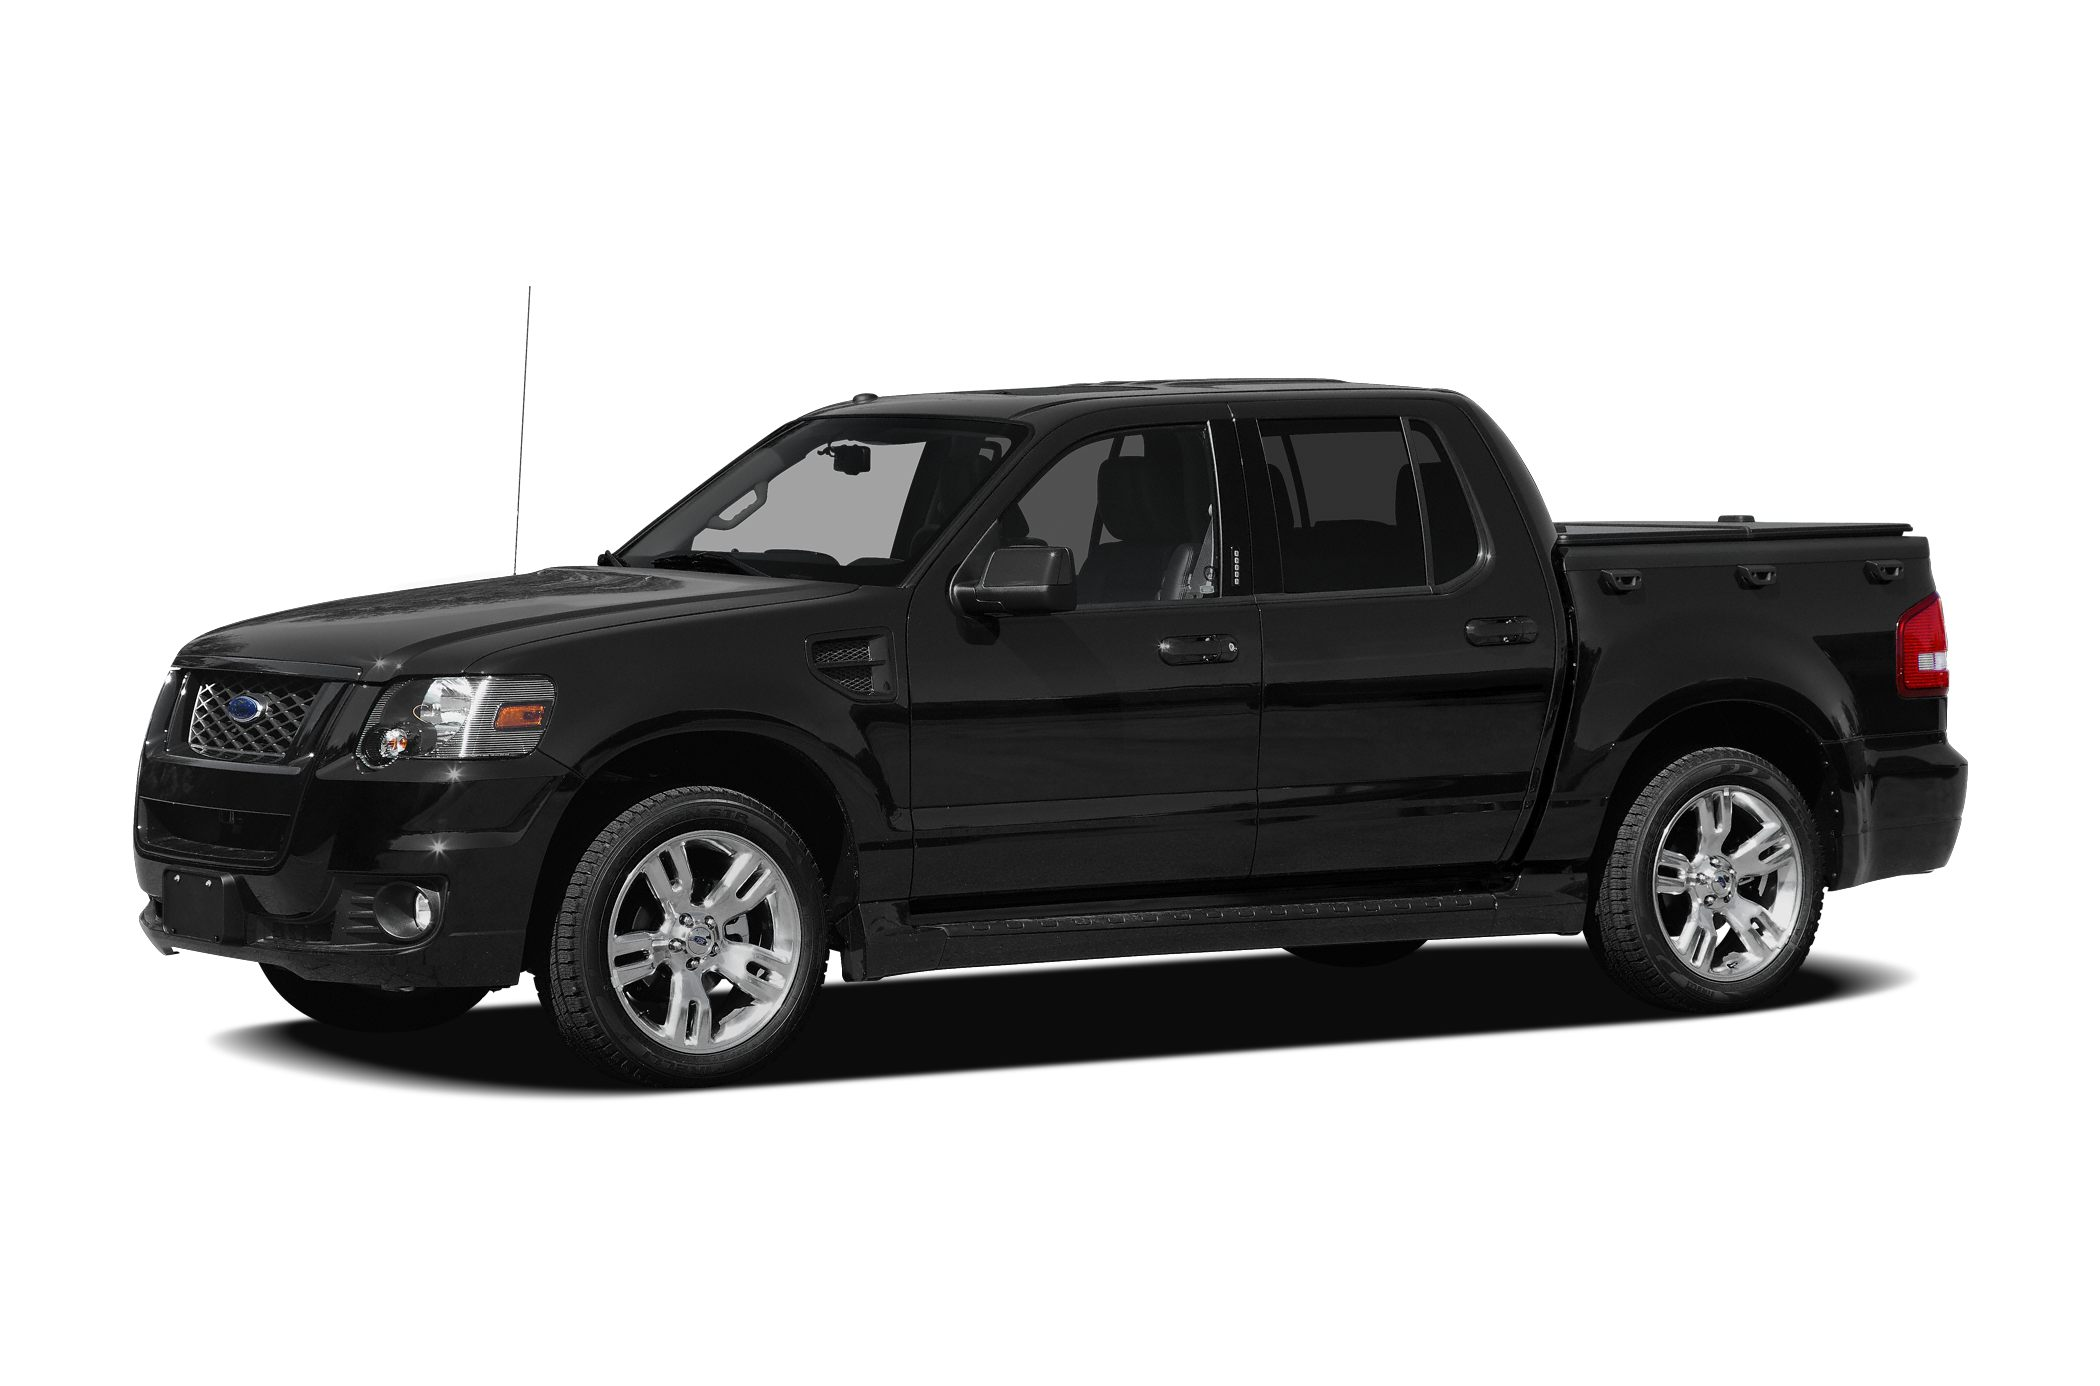 2009 Ford Explorer Sport Trac Limited Crew Cab Pickup for sale in Ponca City for $21,988 with 74,136 miles